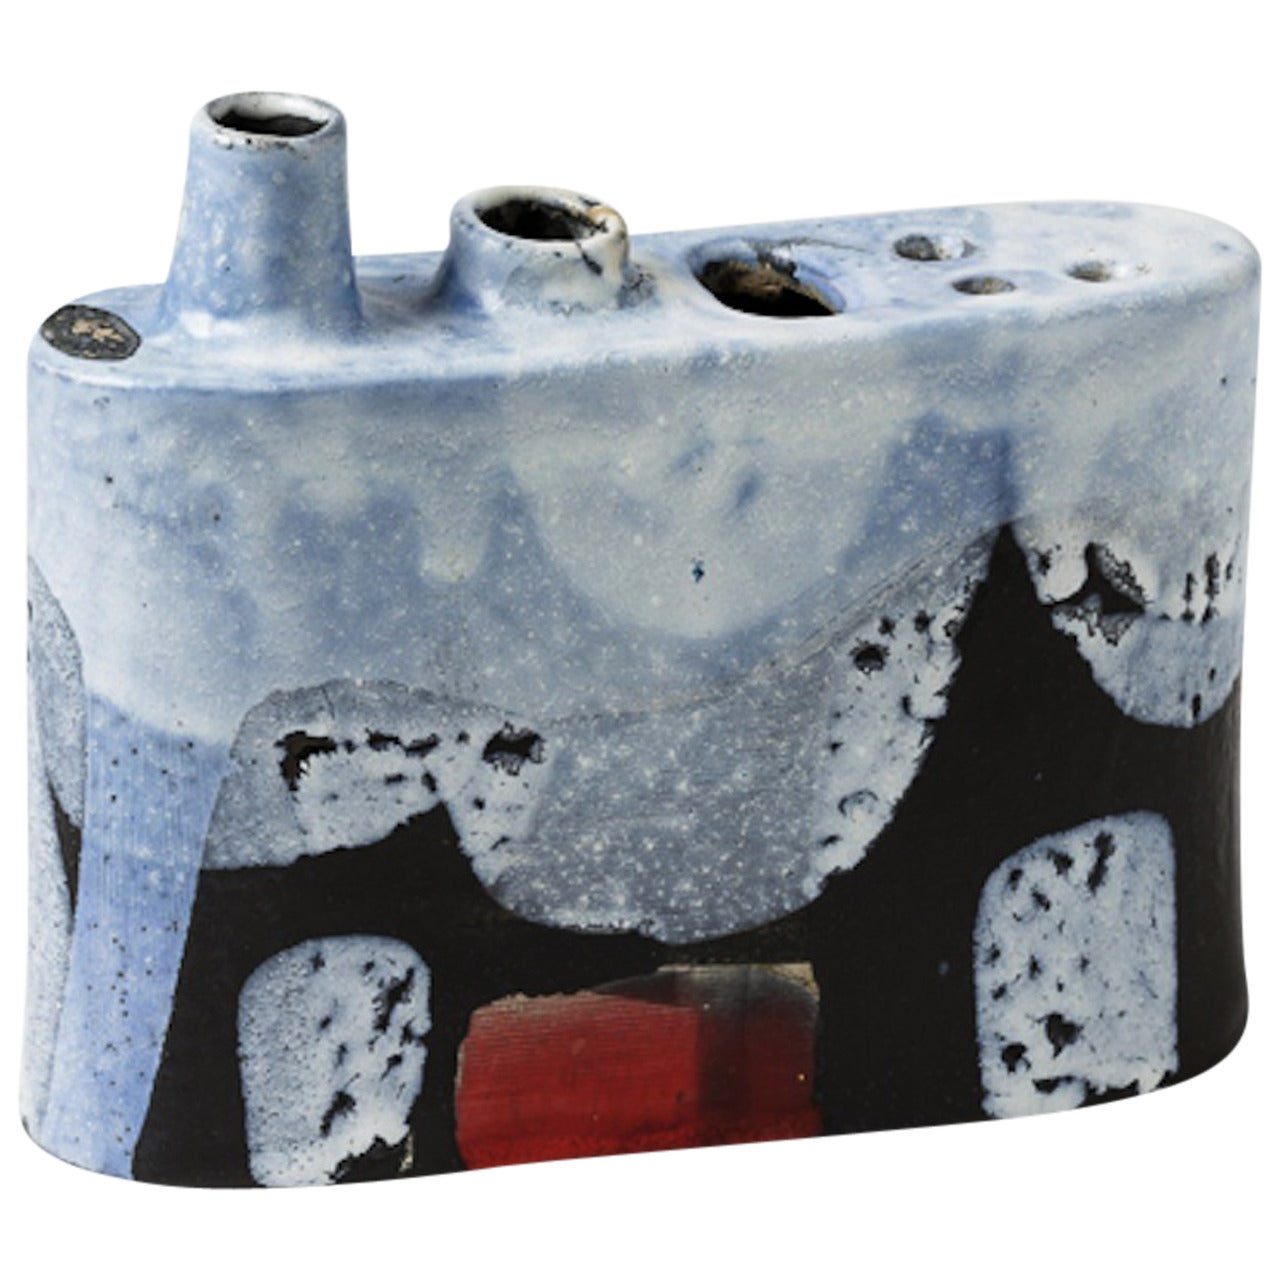 blue and red abstract Ceramic  sculpture Vase by Klaus Schultz, Germany